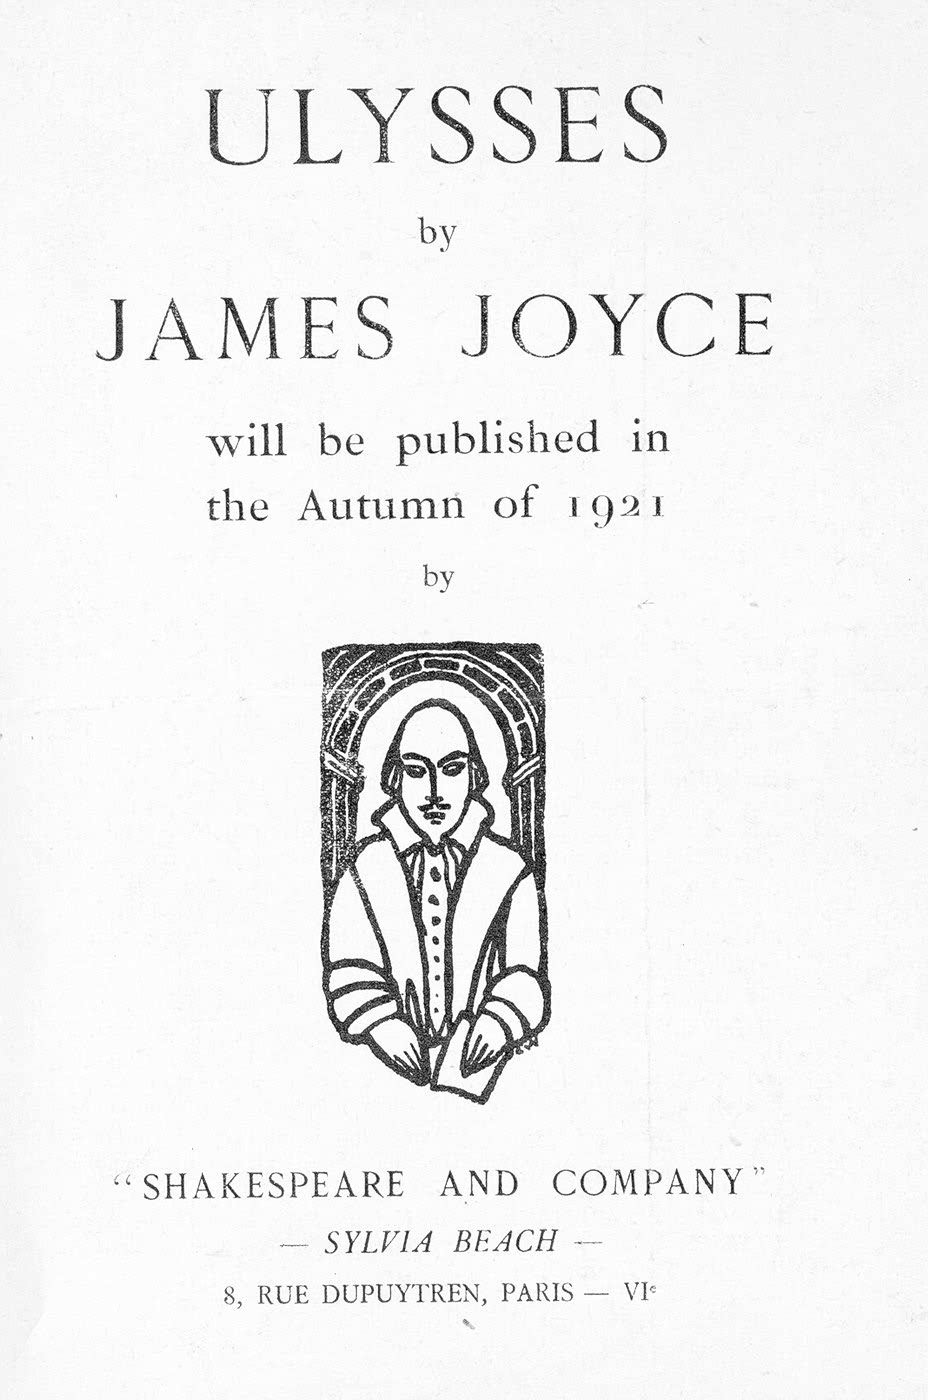 joyces novel essay From modernism lab essays  joyce's novel describes a day in the life of an advertising canvasser in pre-war dublin, drawing implicit parallels between his adventures and those described in homer's odyssey joyce began the novel in a stream-of-consciousness or.